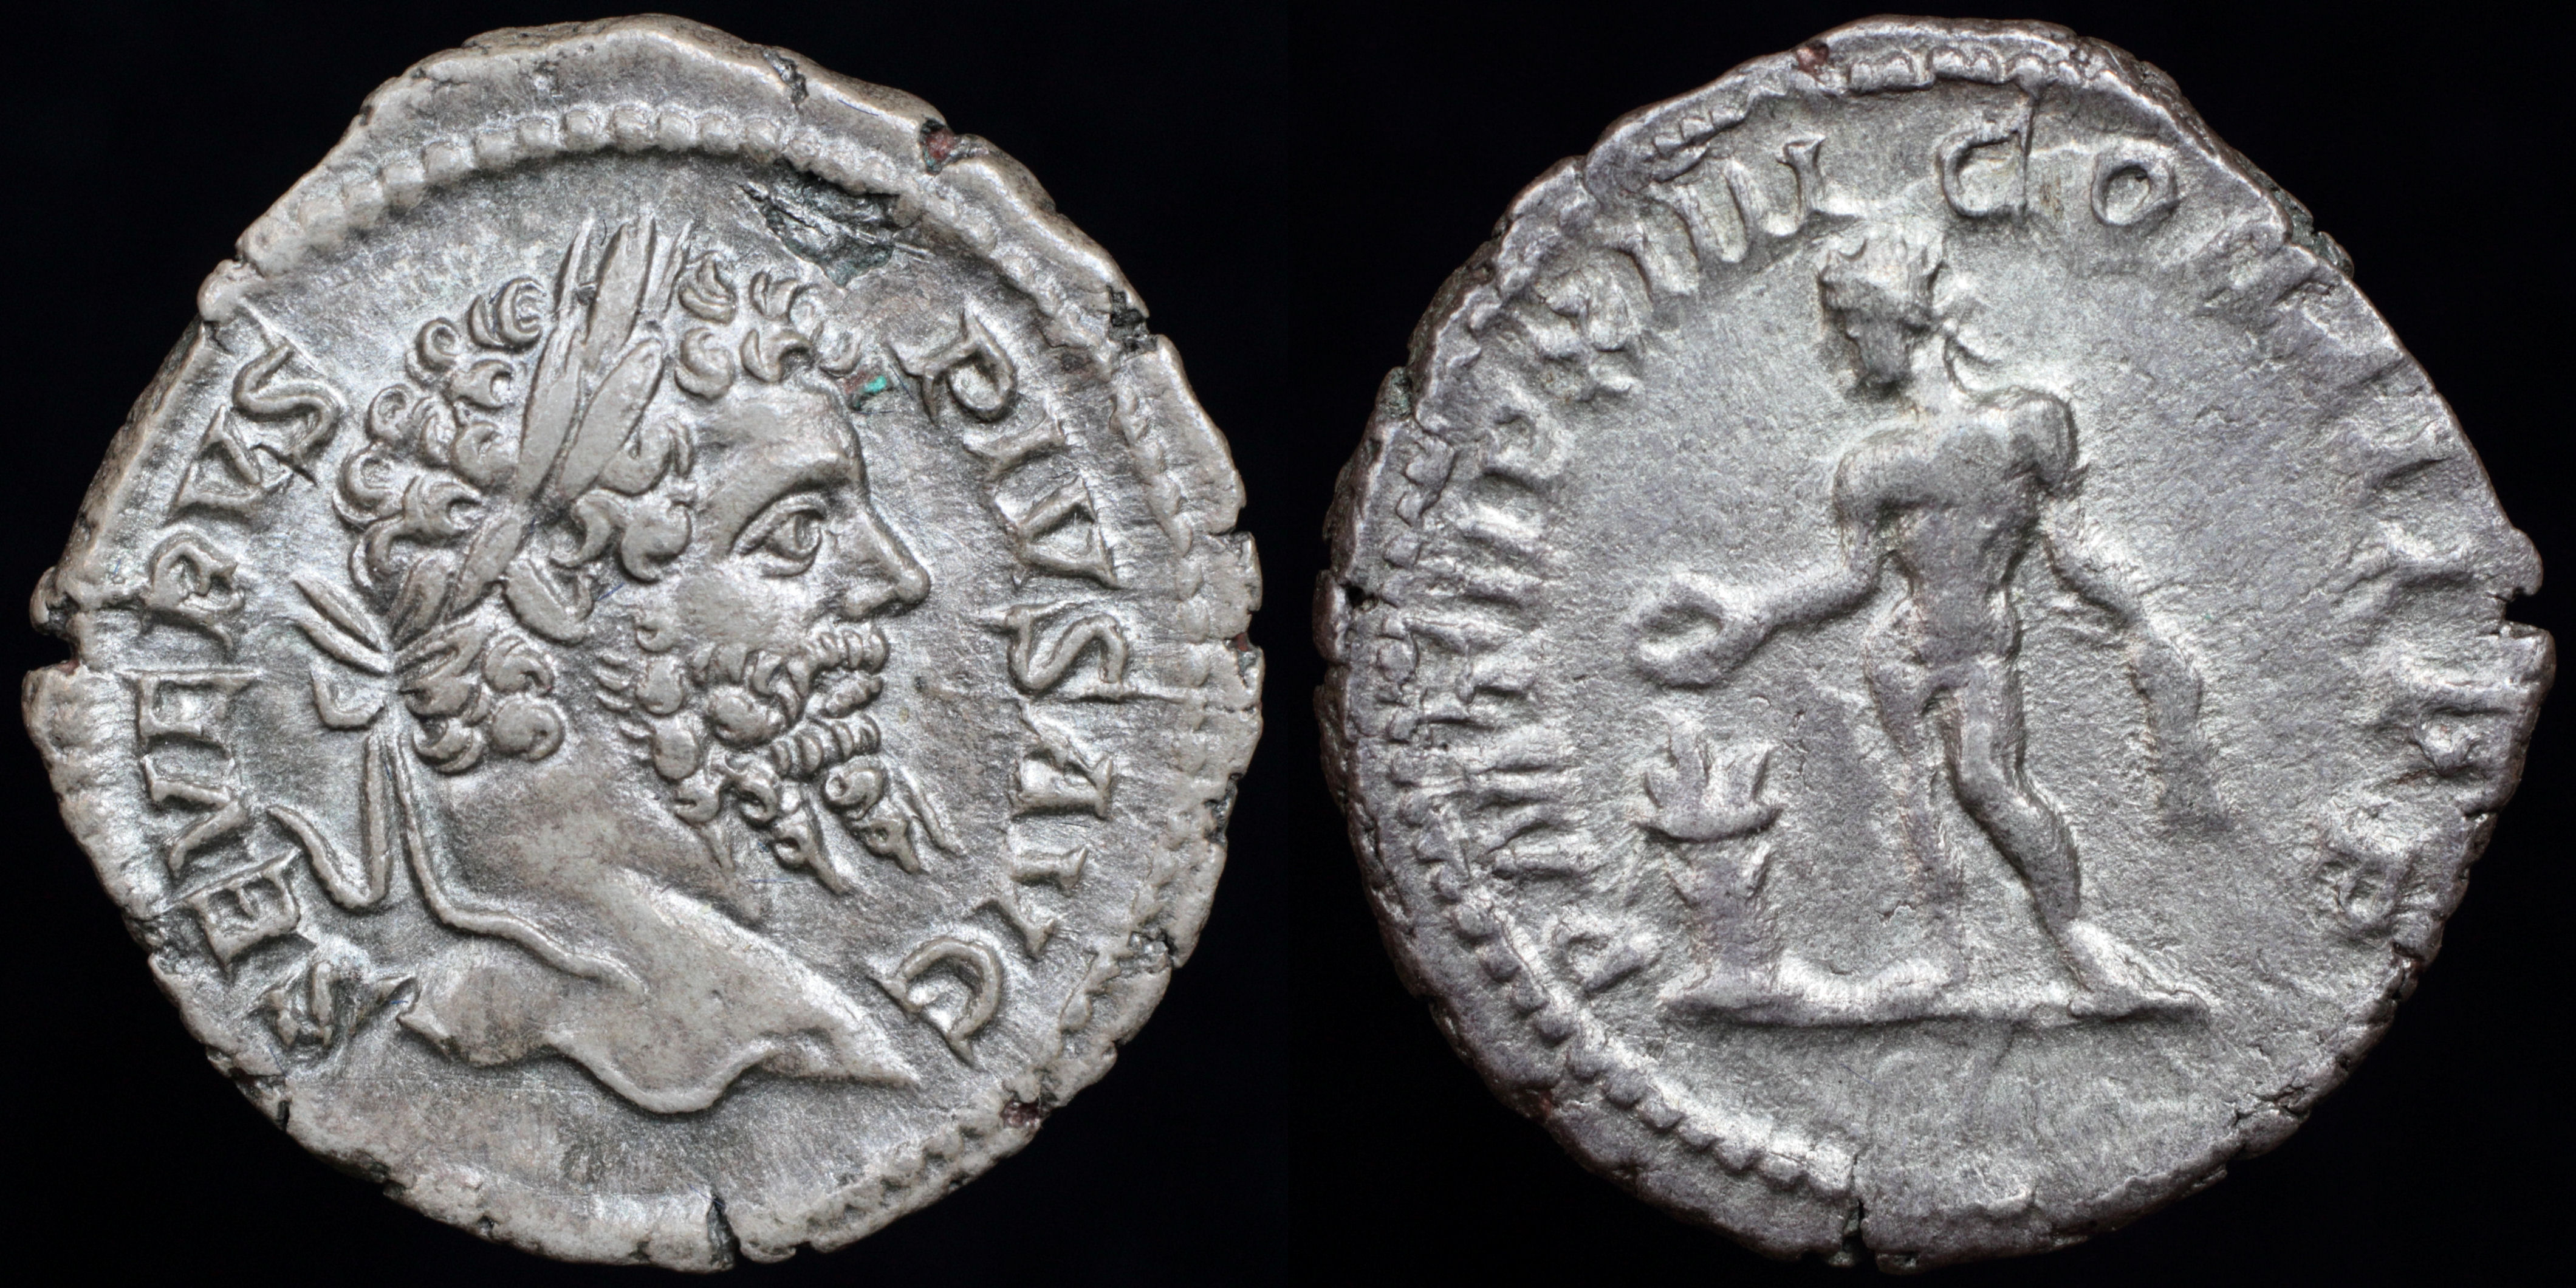 /Files/Images/Coinsite/CoinDB/Septimius_Severus_Genius.jpg